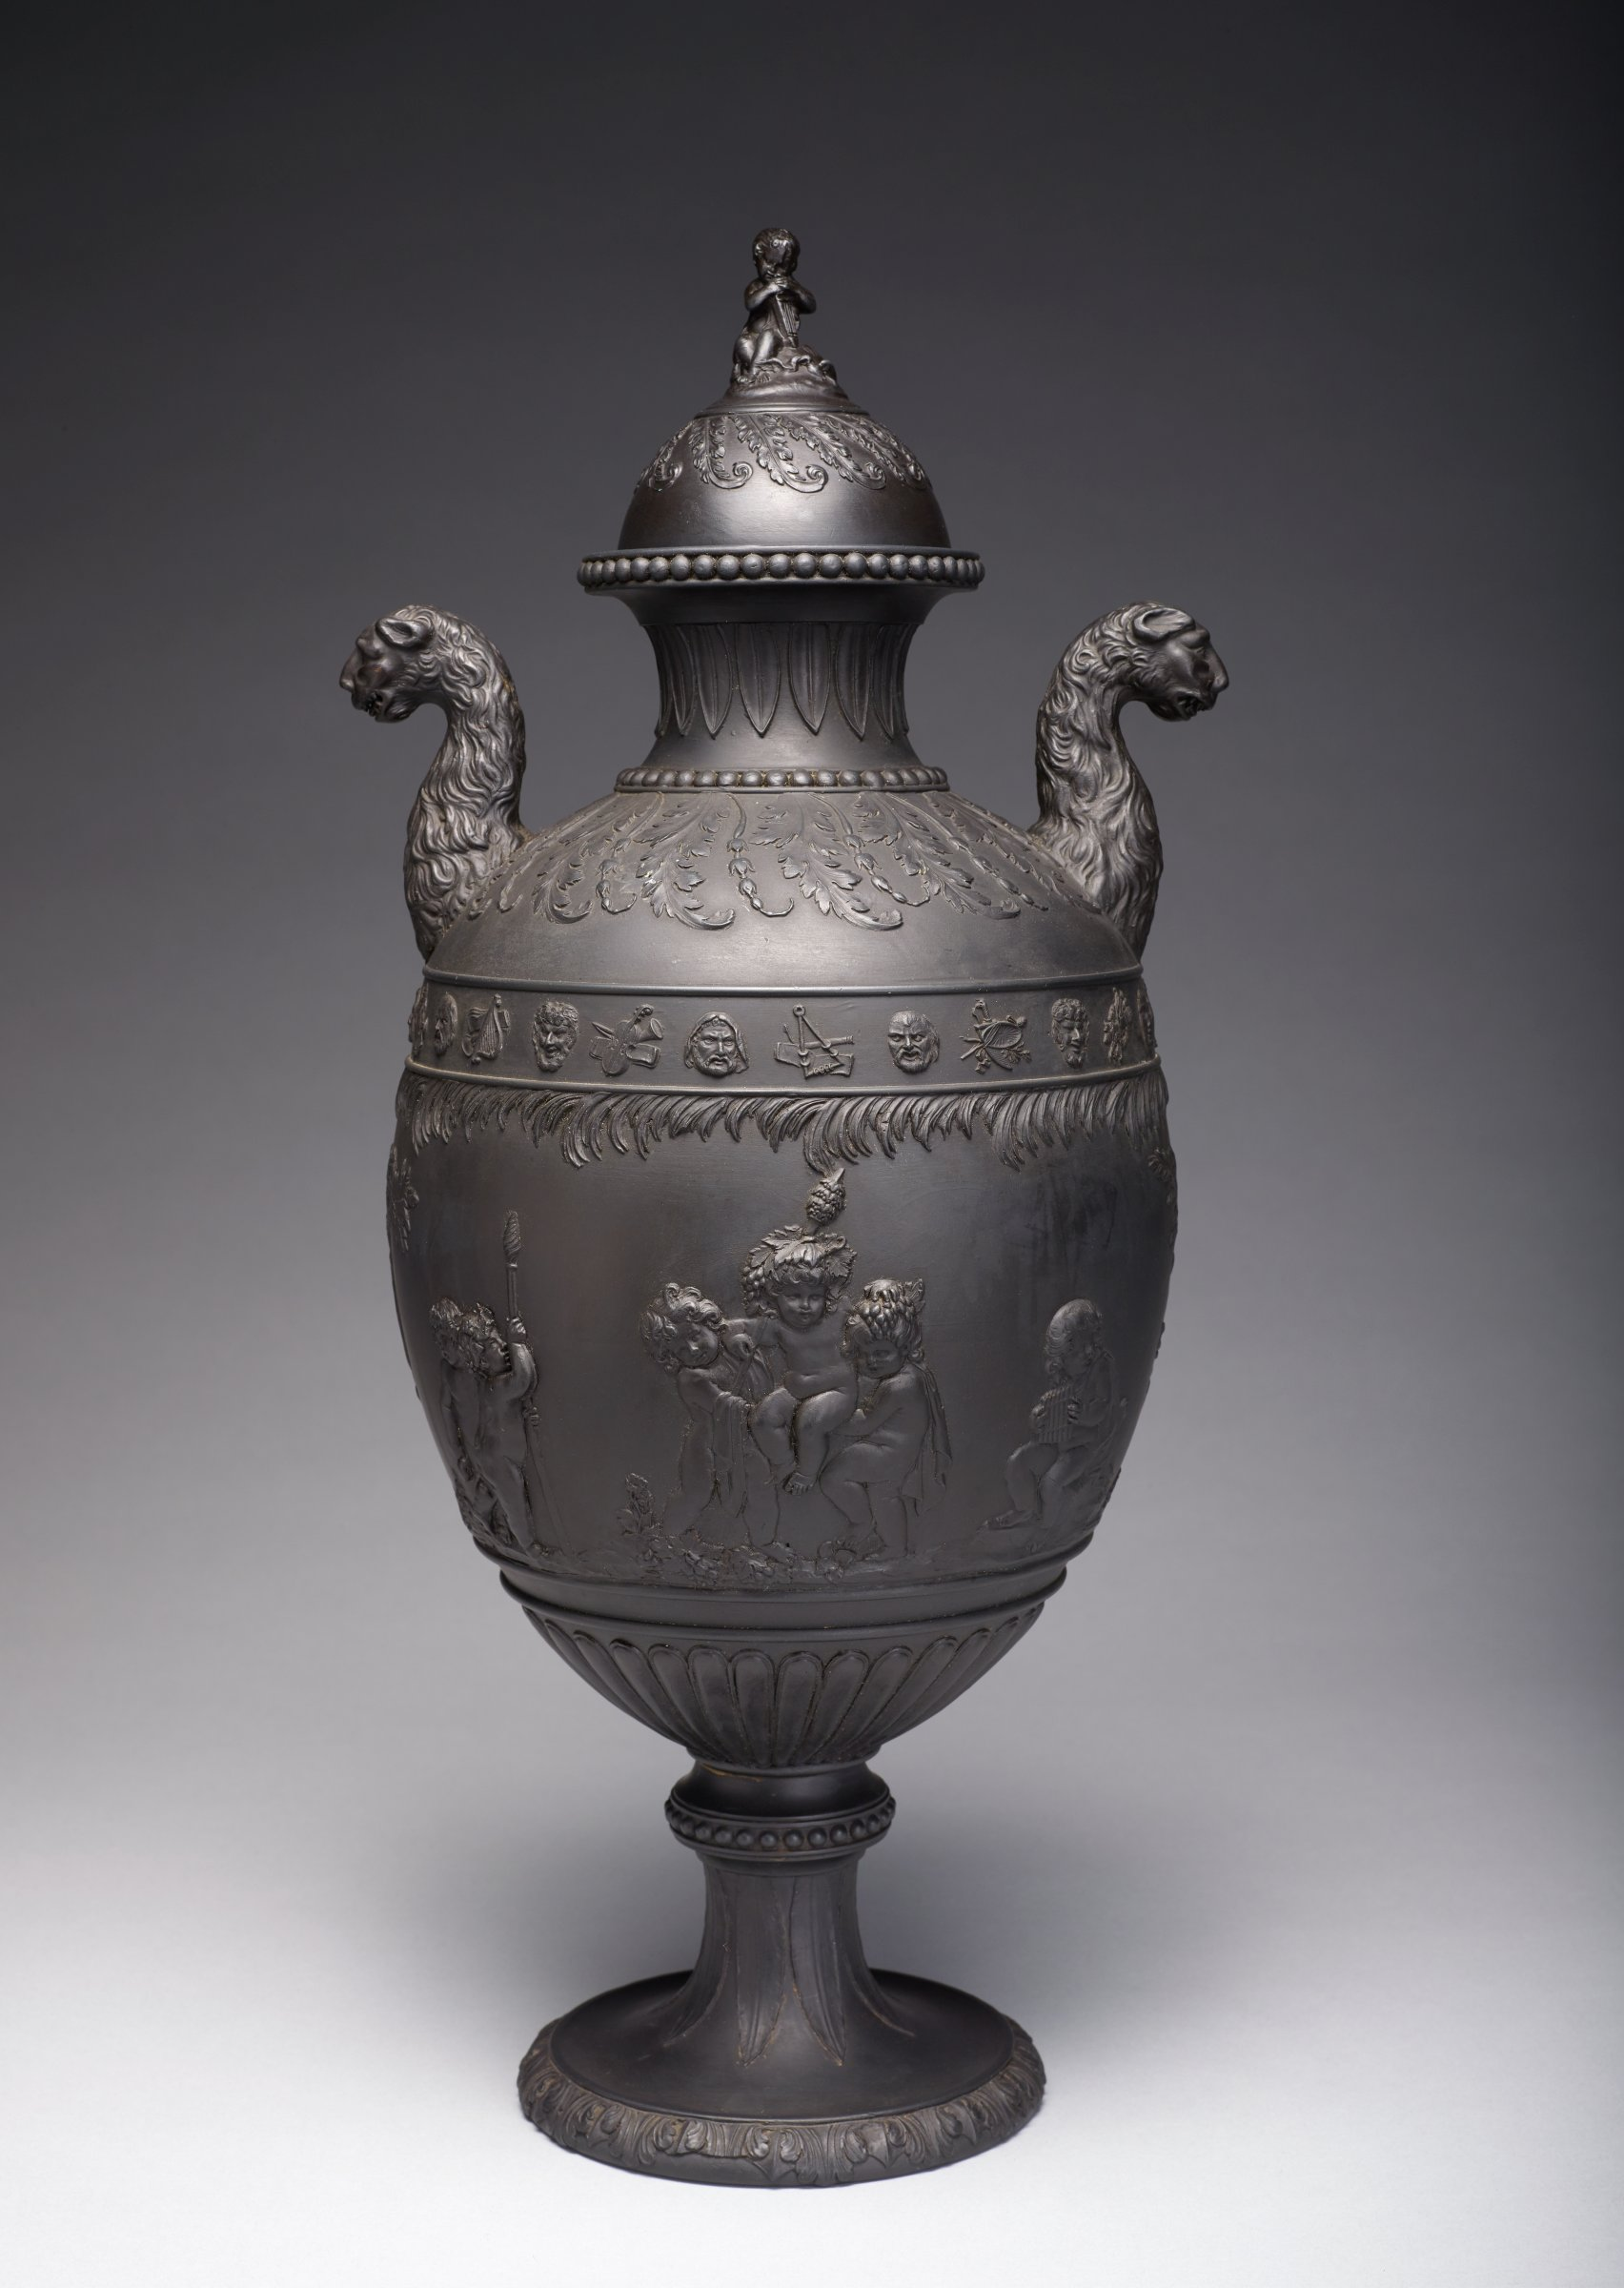 Tall covered urn of black basalt on round foot, the edge with a band of acanthus leaf motifs, the stem with a pattern of stiff leaf elements and with a beaded waist, the lower body with gadrooning and the main body with a scene of Bacchanalian Boys in relief after Lady Diana Beauclerk, including on one side a satyr putti sitting on rocks eating grapes, another sitting under a tree holding a staff, one putti sitting under a tree and dozing and one kneeling with a basket of bunches of grapes, on the other side two putti with a staff, two carrying a third in their arms, and one seated on a rock with pan pipes, trees divide the two sides, above the main body is a band of feathery floral motifs and at the shoulder a band of masks, two of which are Bacchus, and symbols of the arts and sciences, the shoulder with stylized leafy fronds and floral drops, with beading around the neck and lip, stiff leaf motifs on the neck, and two intricate lion, or leopard, handles, the corresponding cover with leafy fronds and a finial in the form of a seated, draped putti with an instrument.